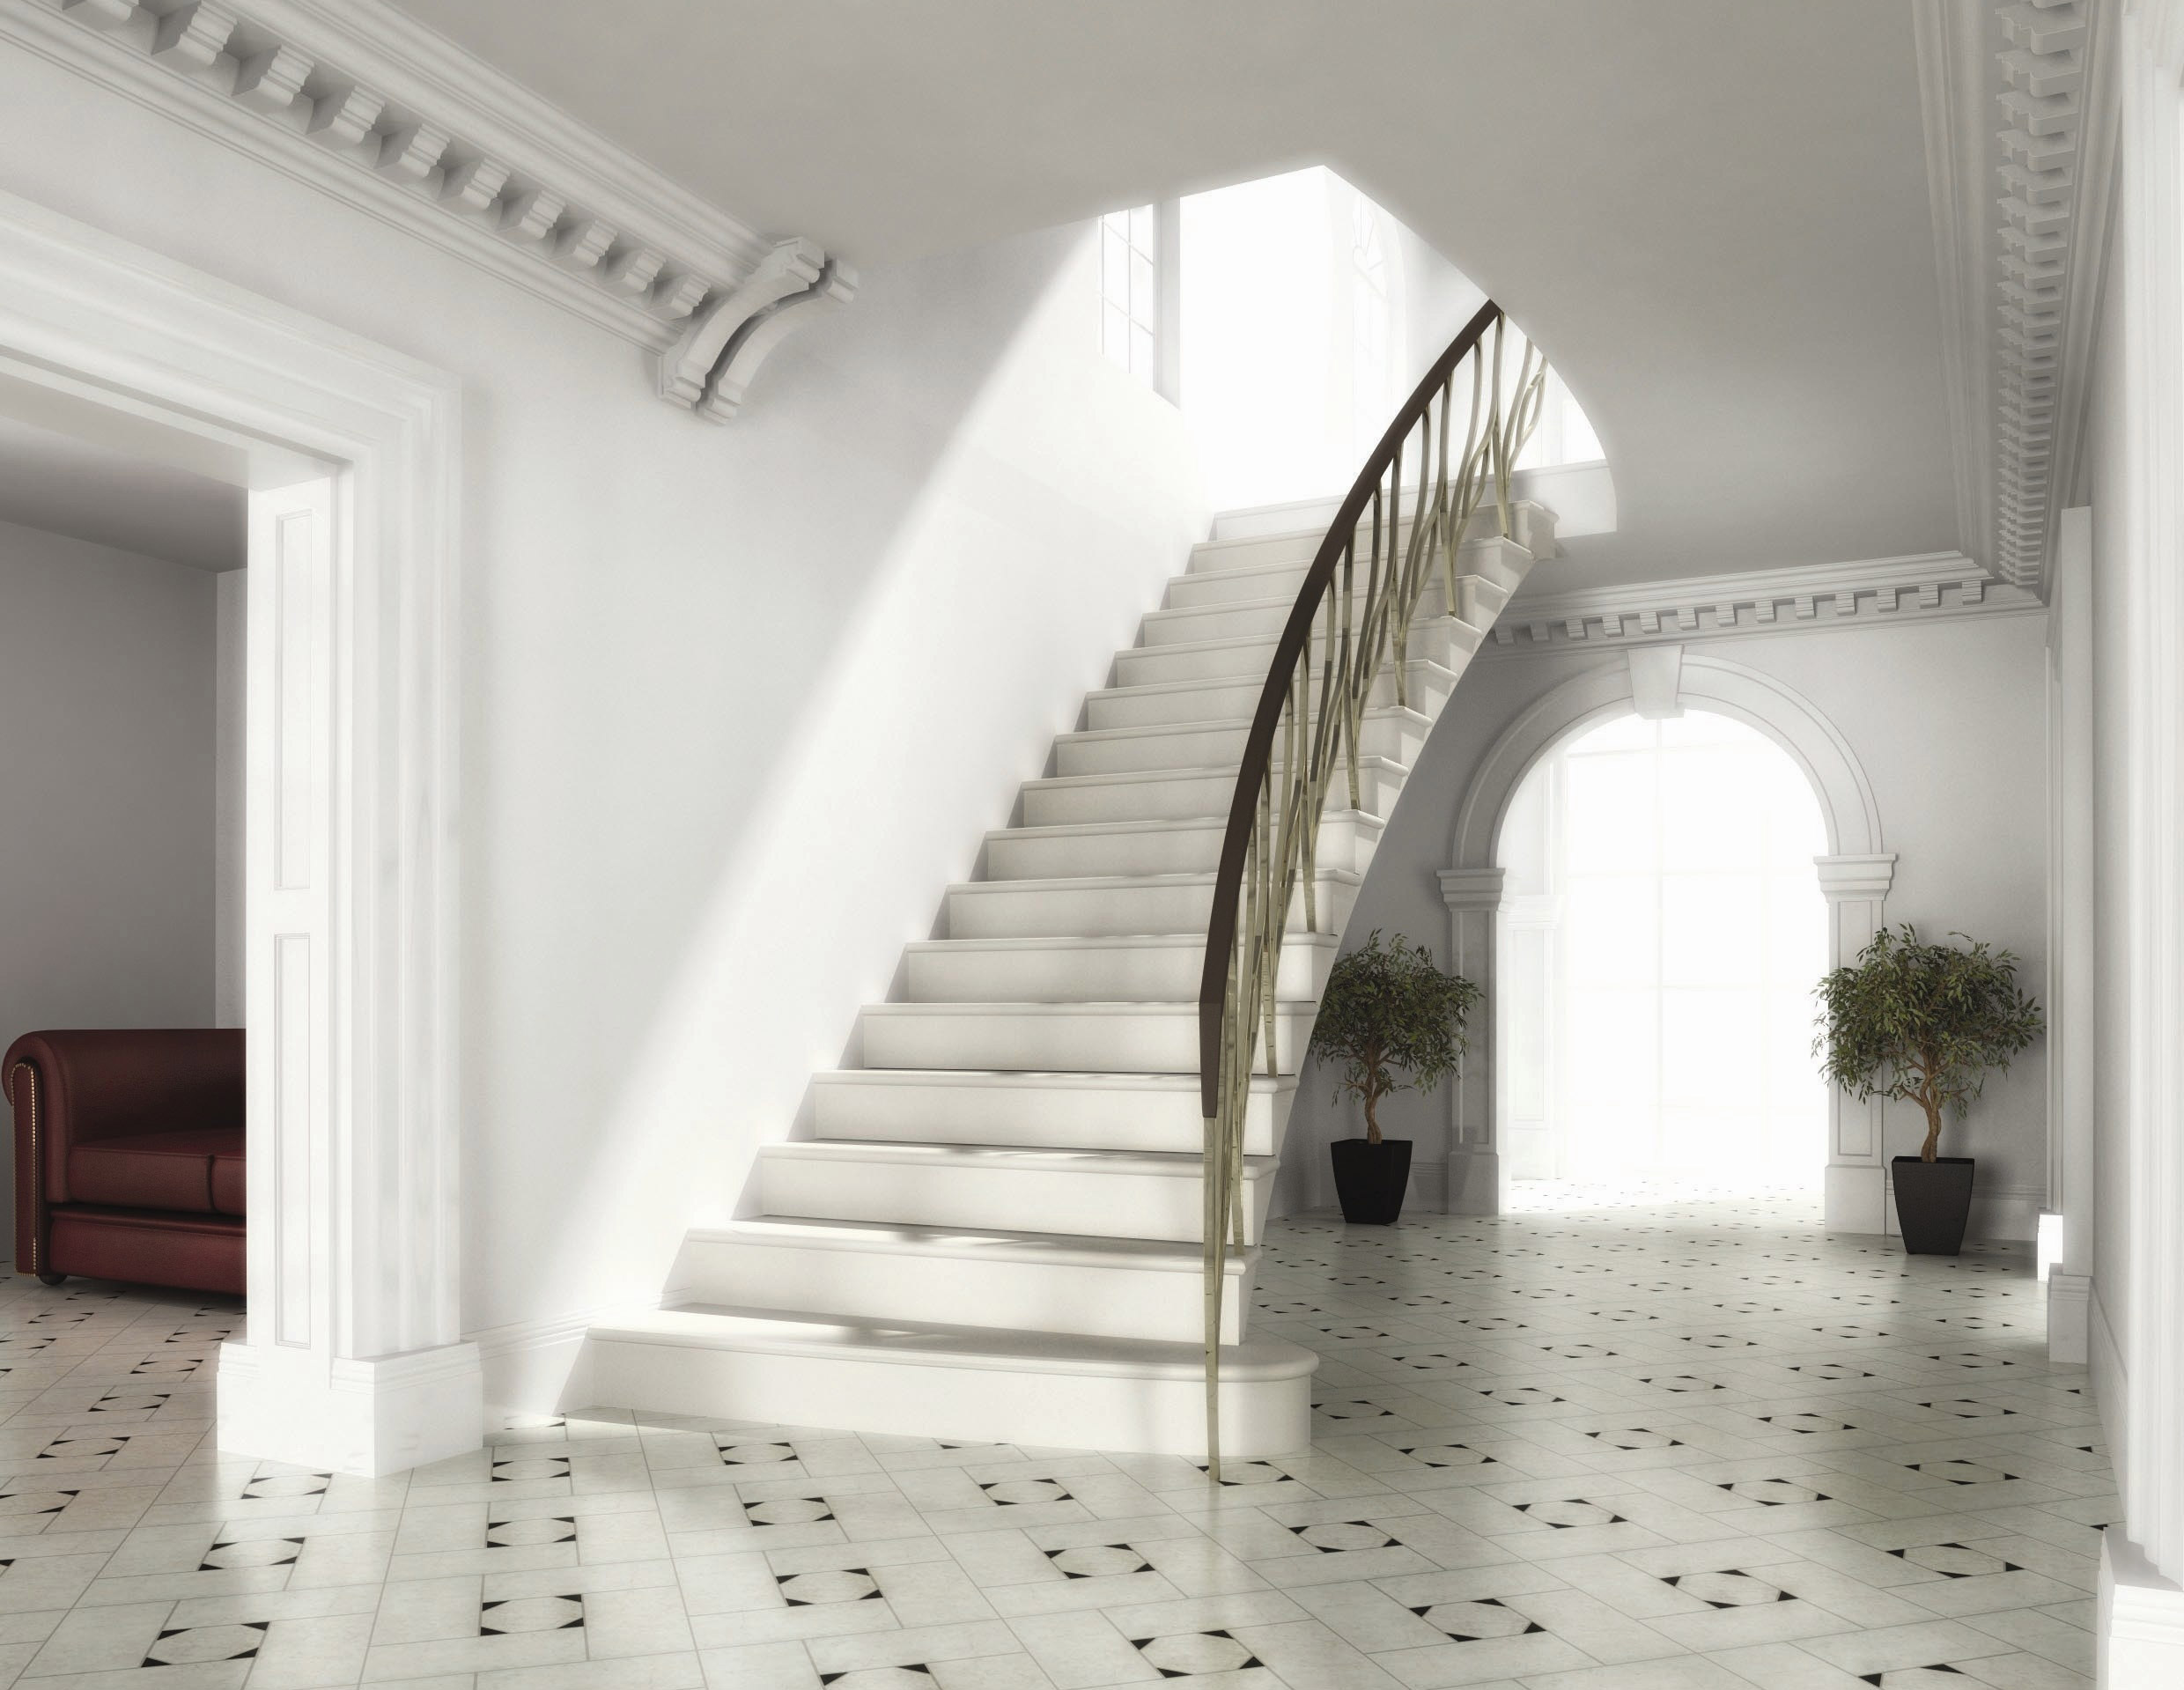 9. Straight Moleanos cantilever stone staircase with curved free end – Lancashire